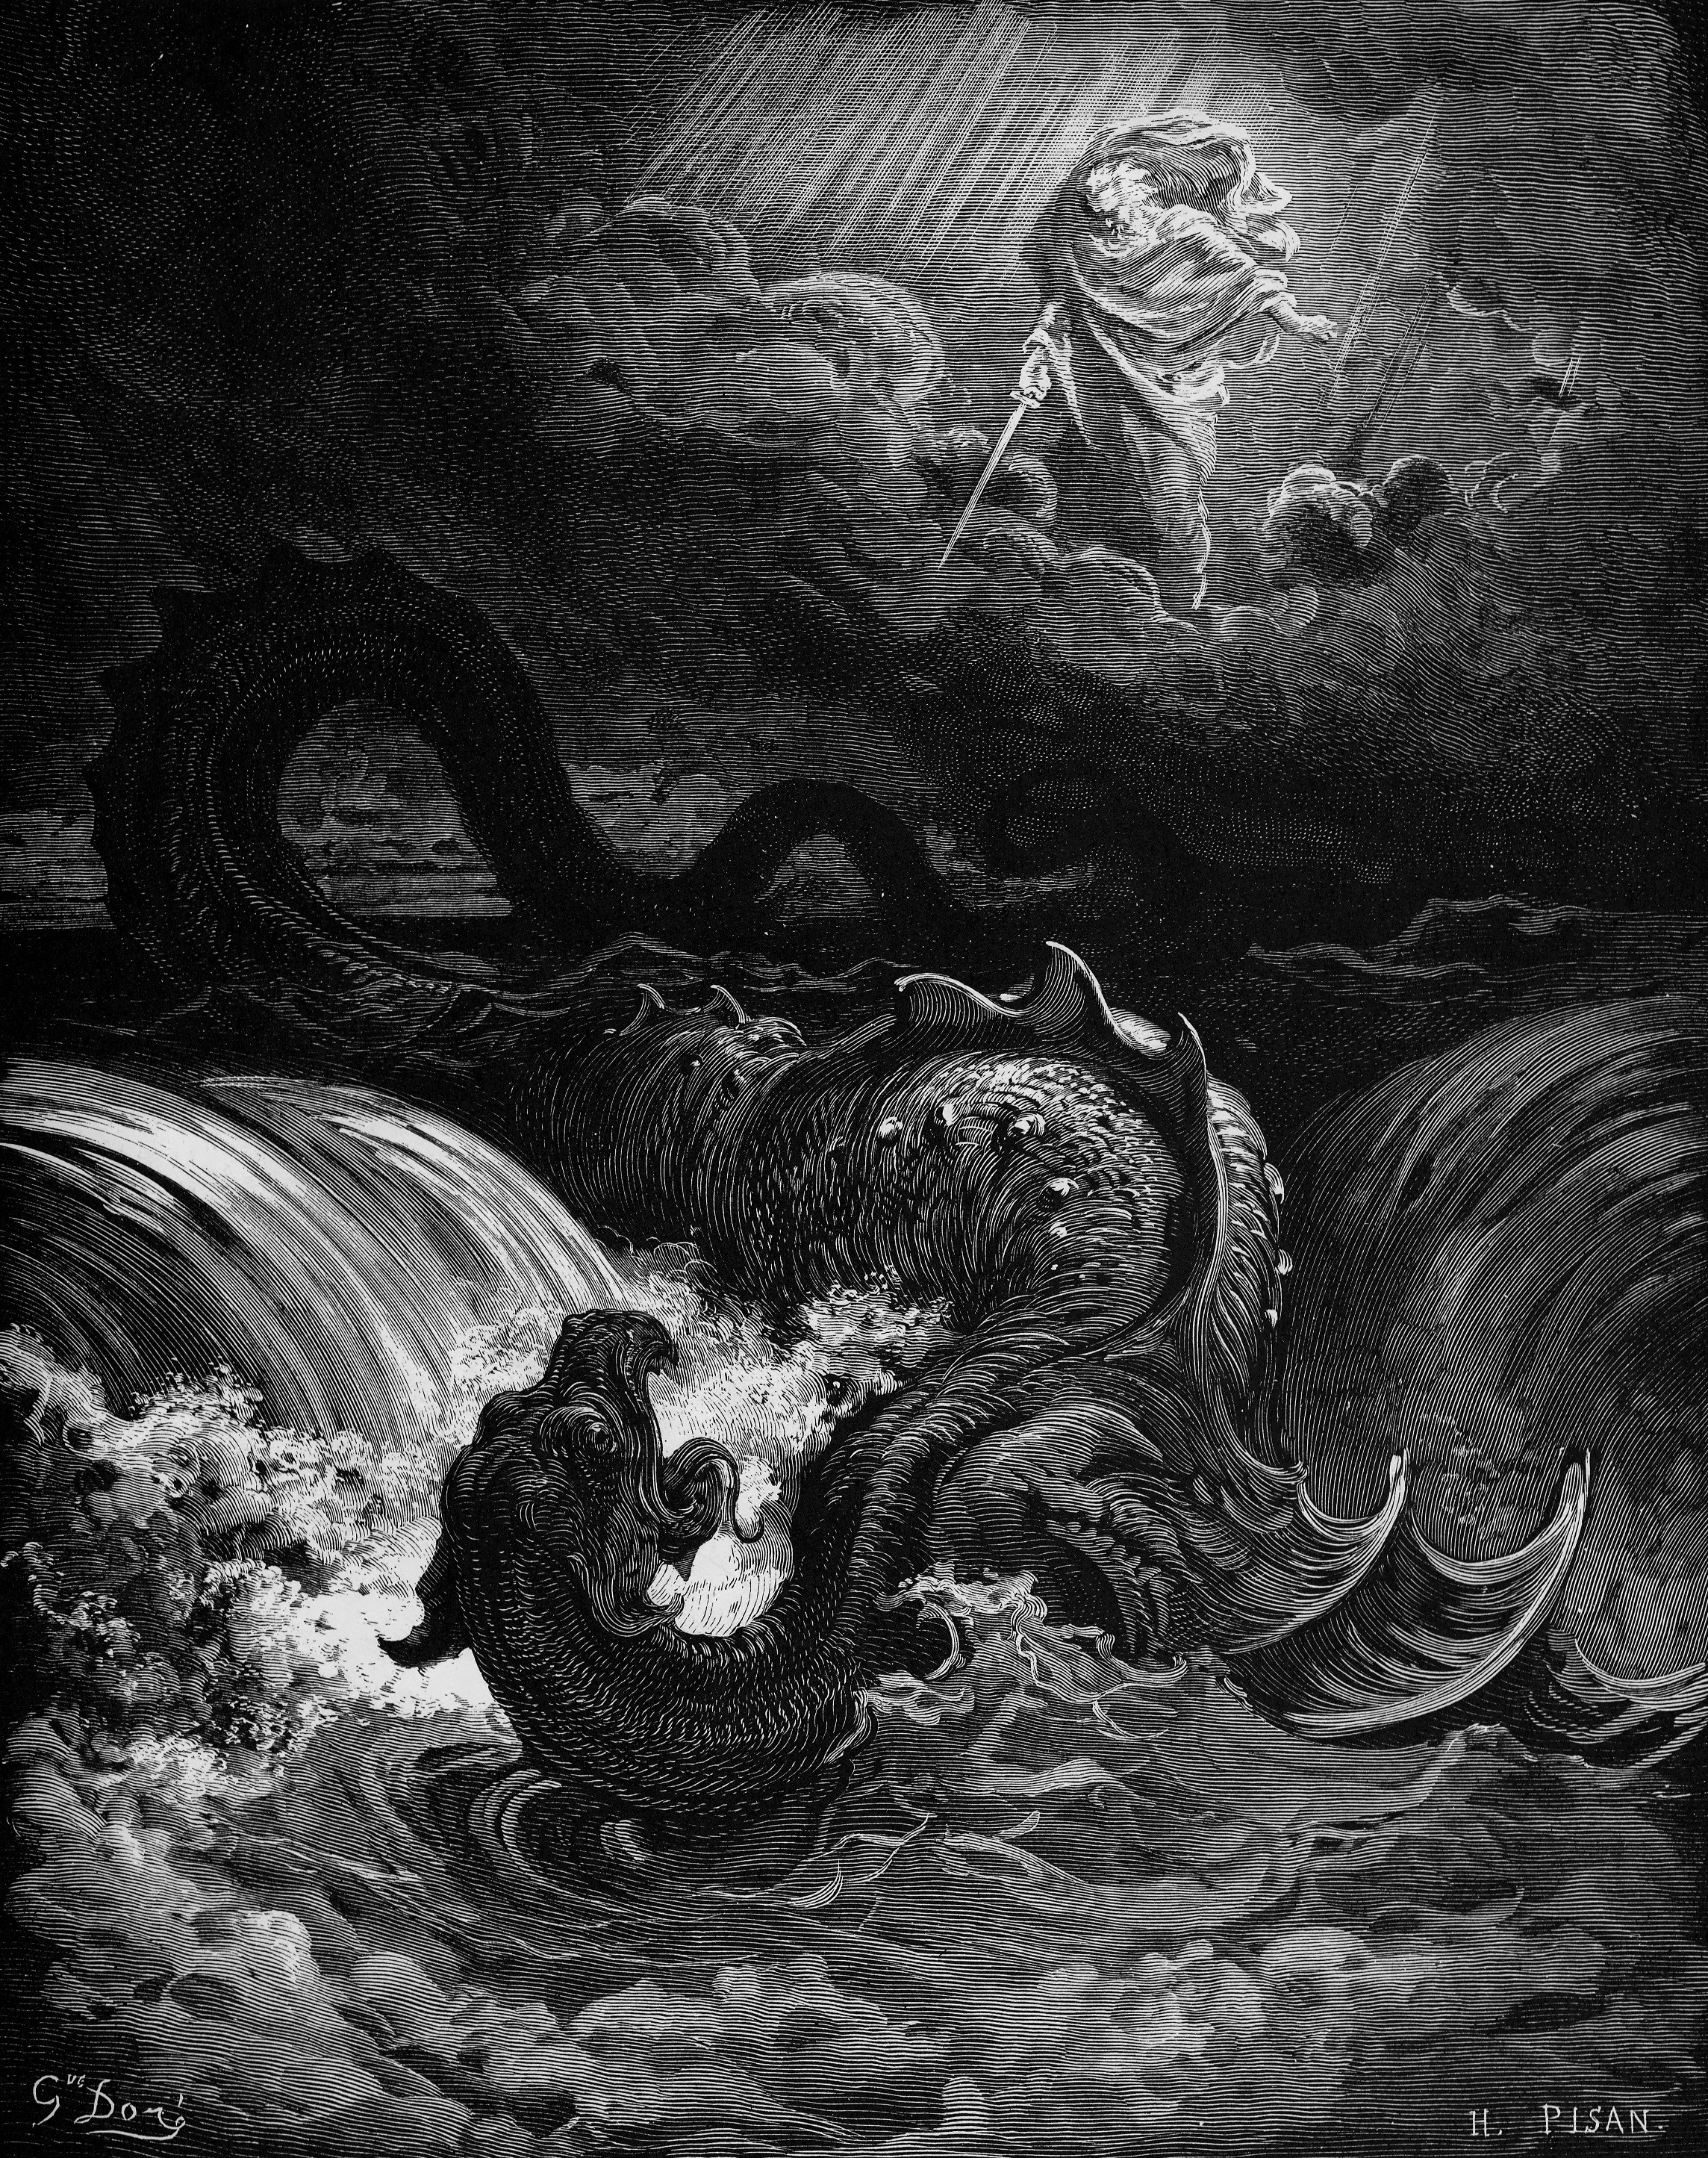 http://upload.wikimedia.org/wikipedia/commons/9/9d/Destruction_of_Leviathan.png